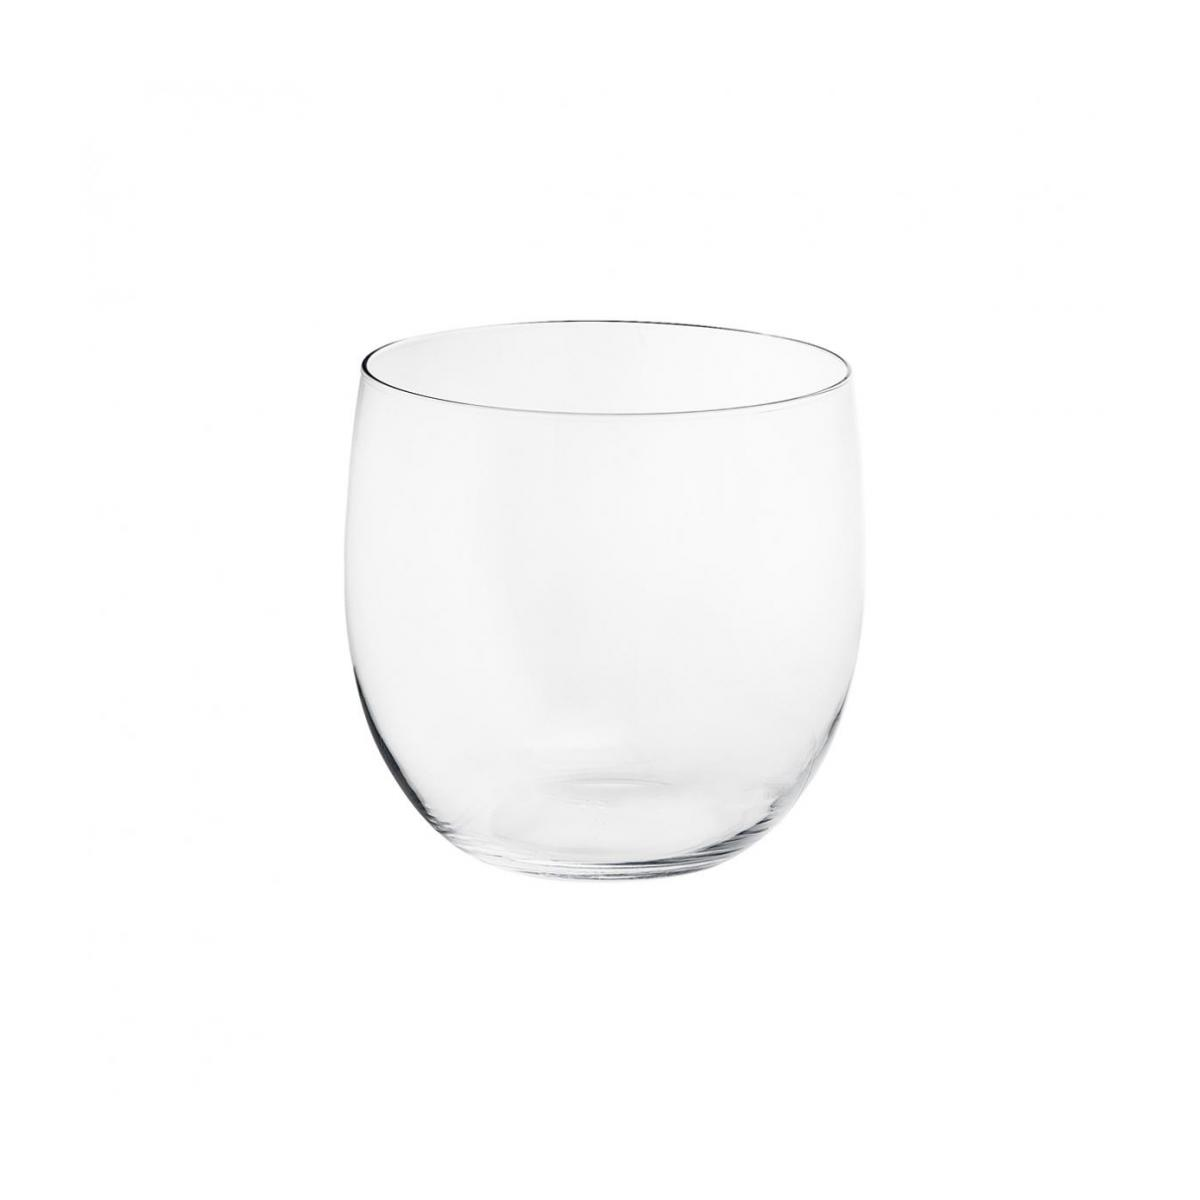 Cache-pot 27cm en verre transparent